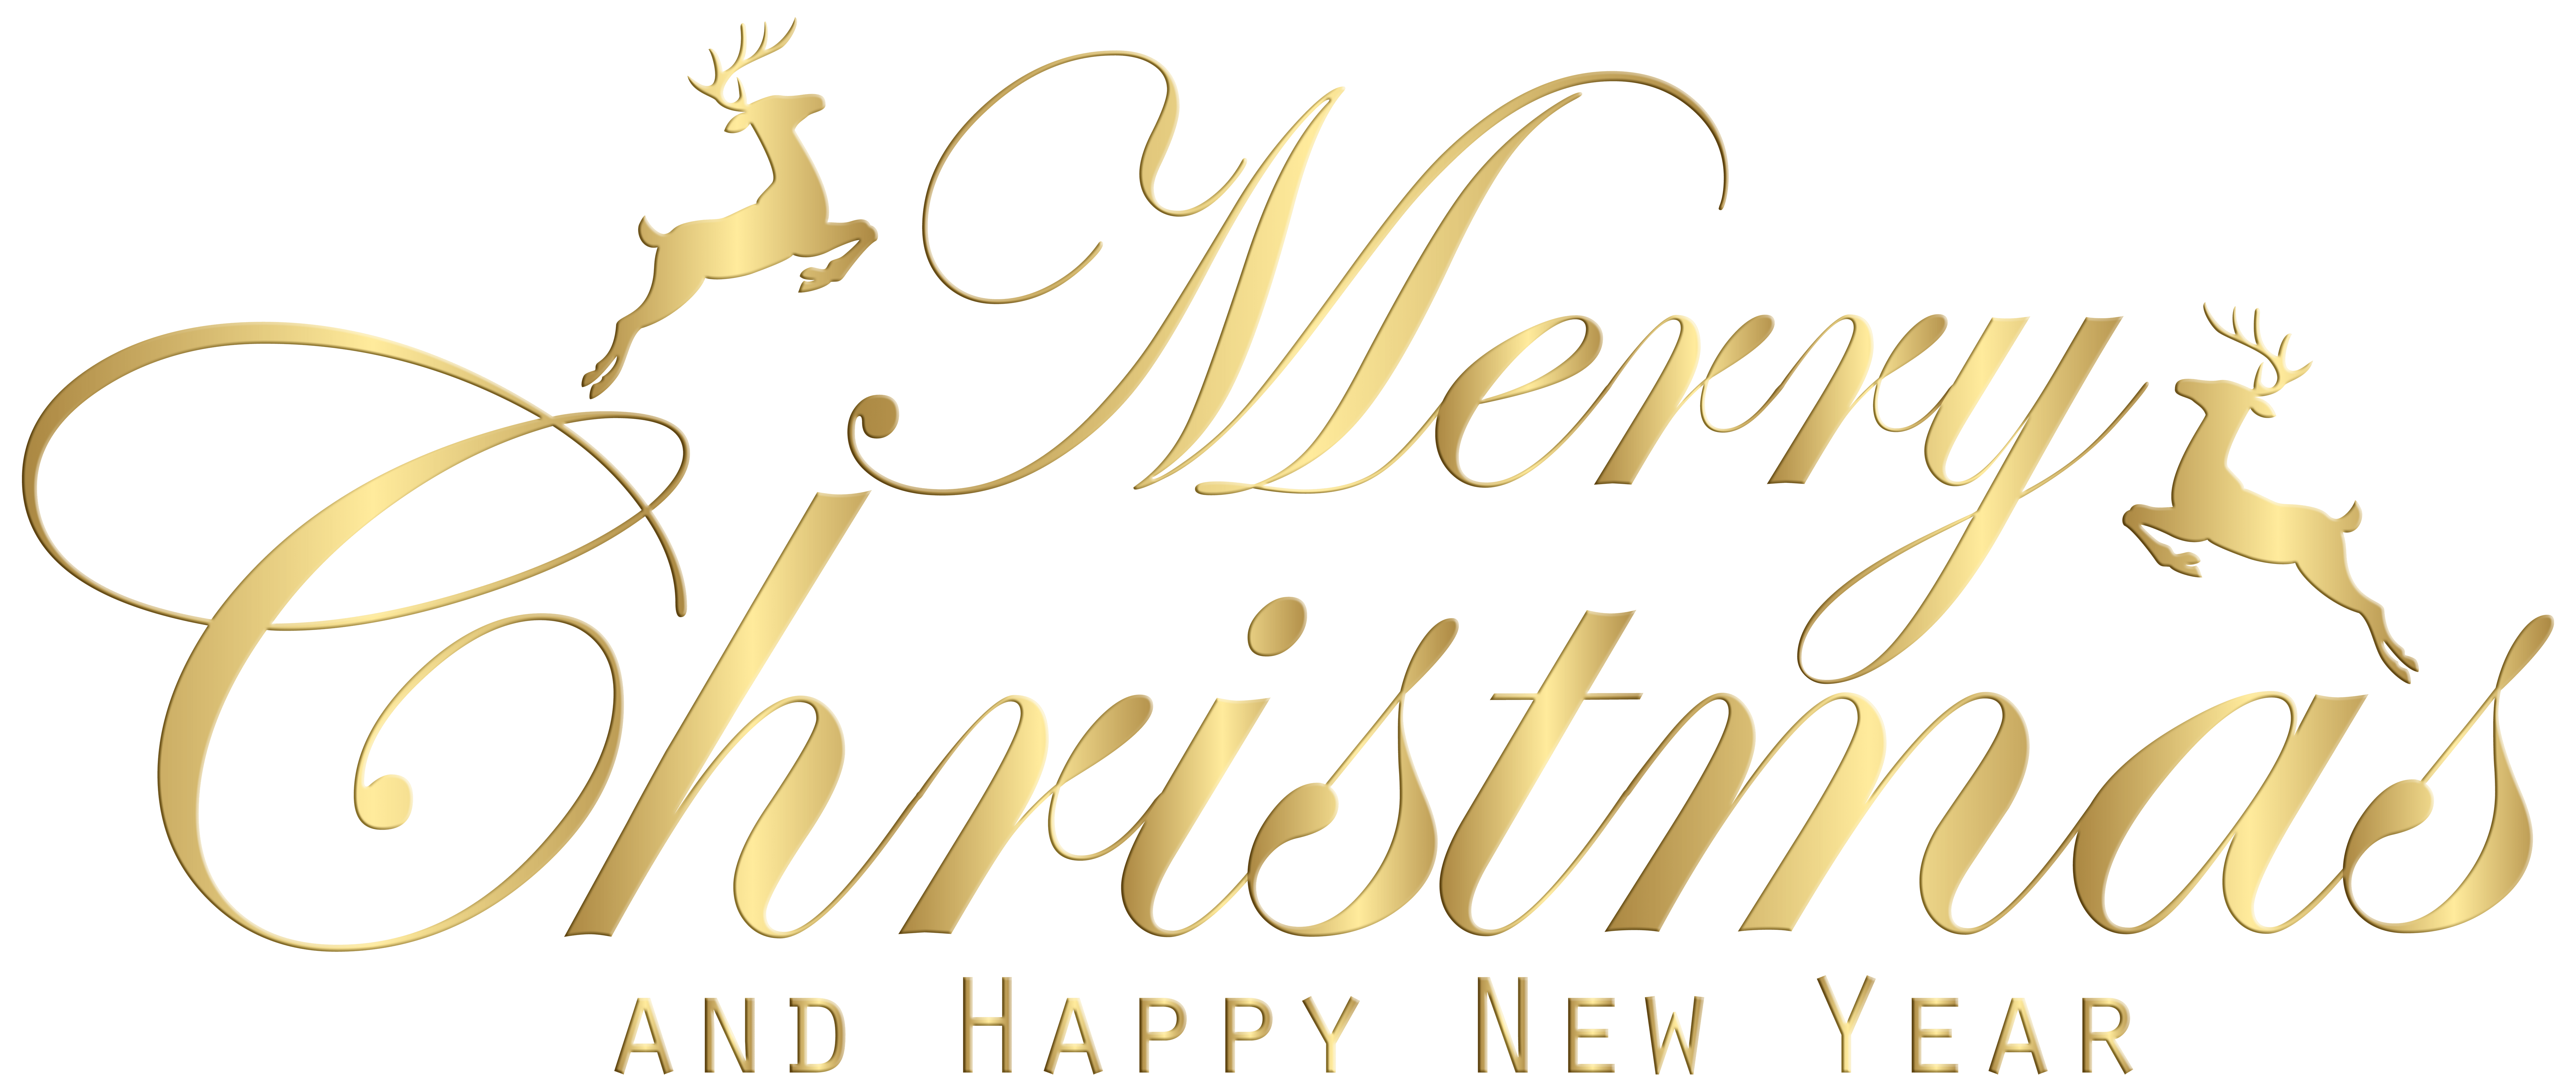 Merry Christmas Gold Transparent Clip Art Image Gallery